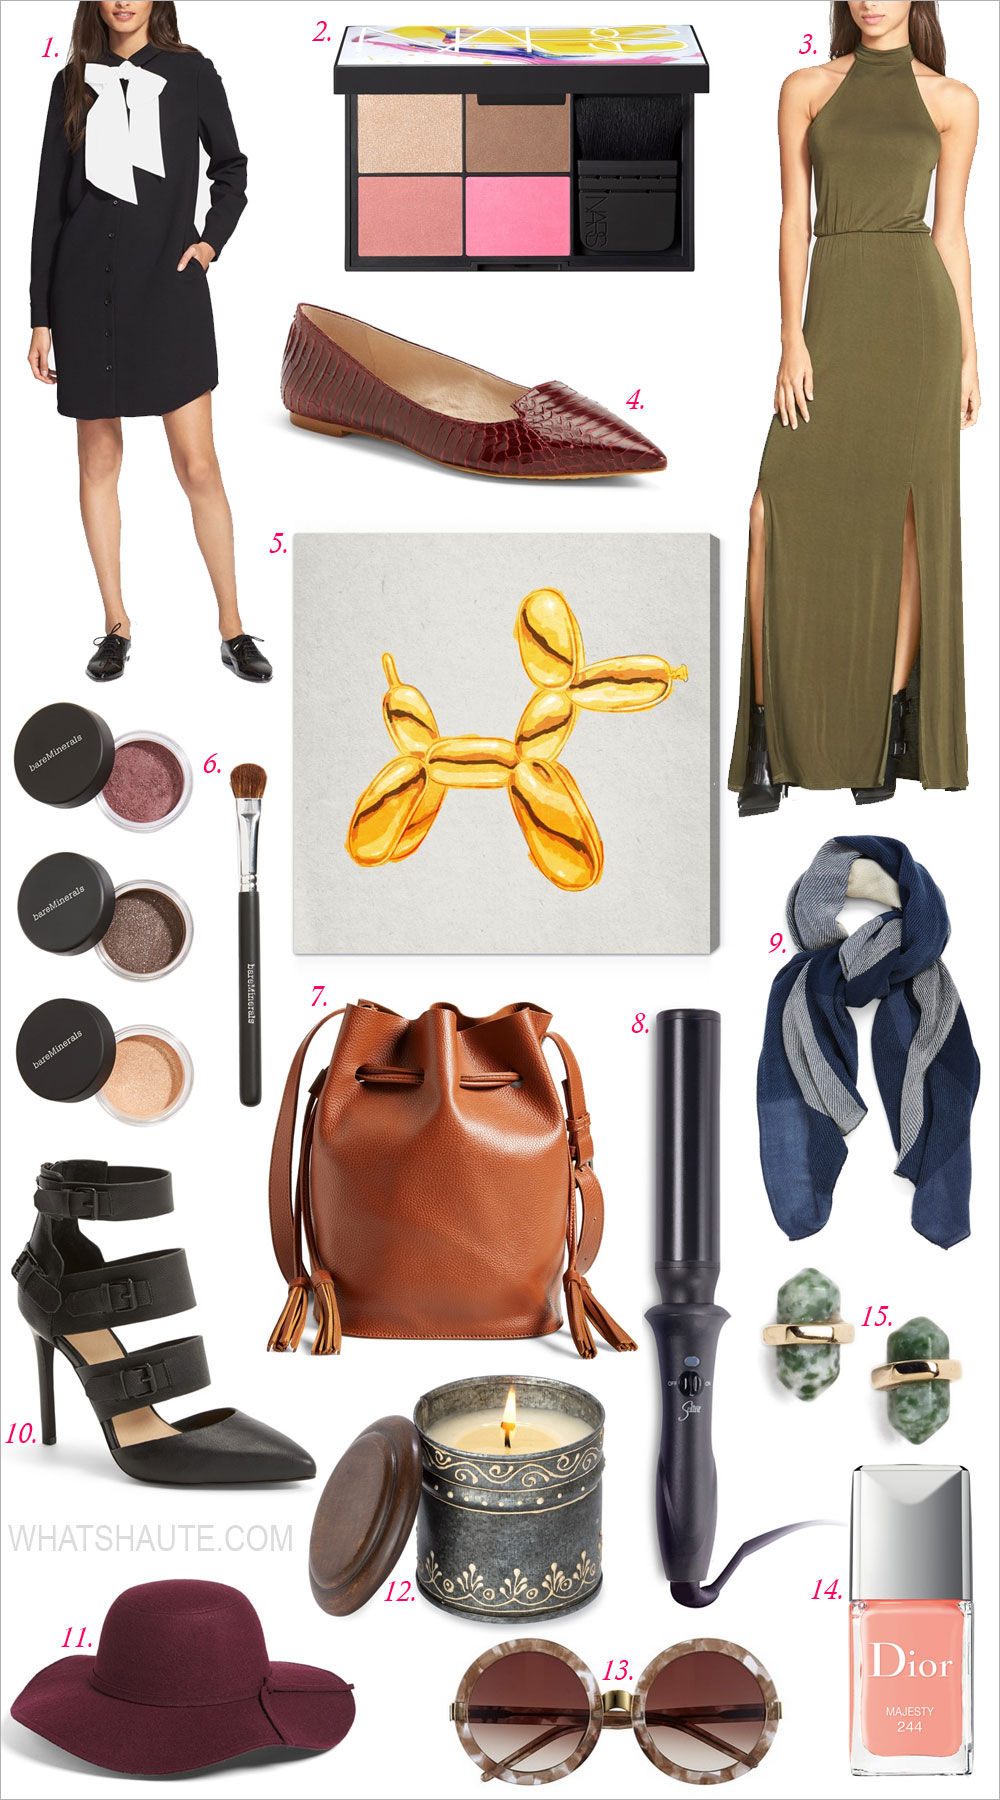 15 Must-Have Items From the Nordstrom Anniversary Sale: BP. Plaid Scarf, Leith Floppy Felt Hat, Street Level Vegan Leather Bucket Bag, Oliver Gal 'Balloon Dog Lux' Wall Art, Wildfox 'Malibu' 56mm Sunglasses, bareMinerals® 'Bare Basics' Eyecolor Collection, kate spade new york bow shirtdress, Dior 'Vernis' Gel Shine & Long Wear Nail Lacquer, Sultra 'The Bombshell™' 1.5-Inch Rod Curling Iron, Joe's 'Giddy' Leather Pointy Toe Pump, Vince Camuto 'Empa' Pointy Toe Loafer Flat, NARS 'Blame it on NARS' Cheek Palette, Himalayan Trading Post Tin Candle, Nordstrom Semiprecious Stone Stud Earrings, Leith Double Slit Maxi Dress